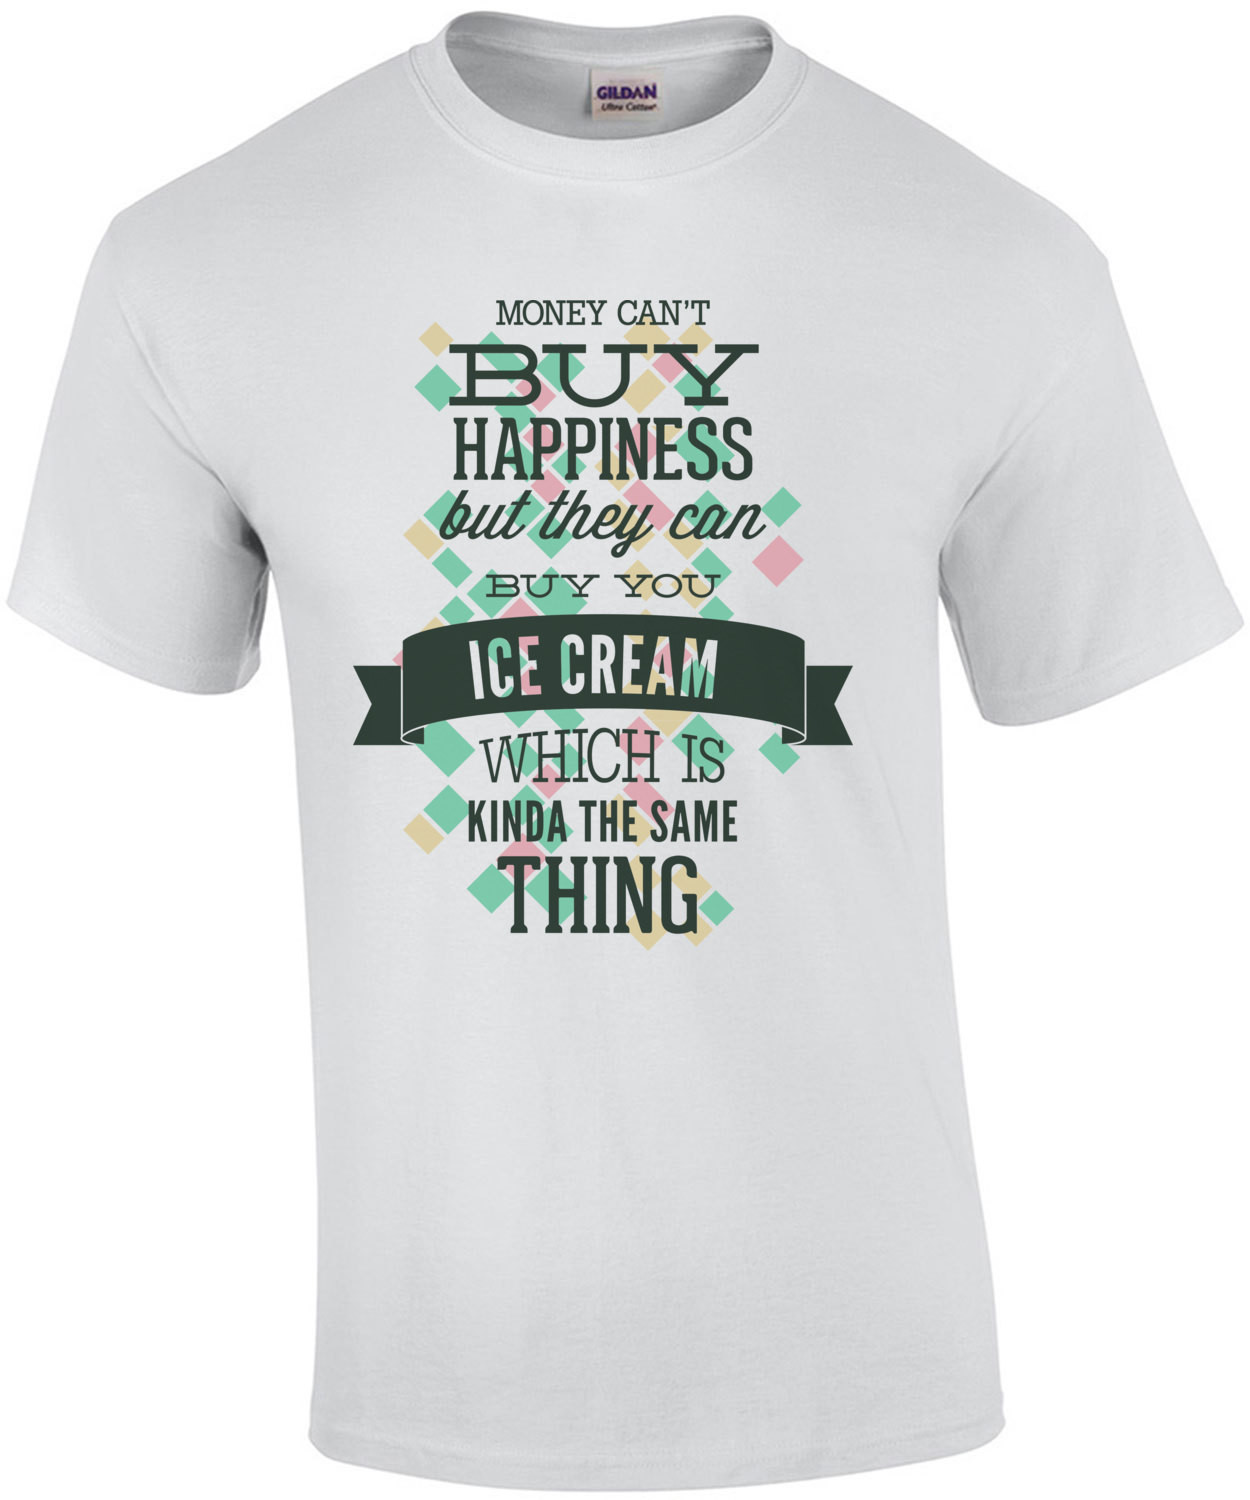 Money Cant Buy Happiness But They Can Buy You Ice Cream Which Is Kinda The Same Thing T-Shirt